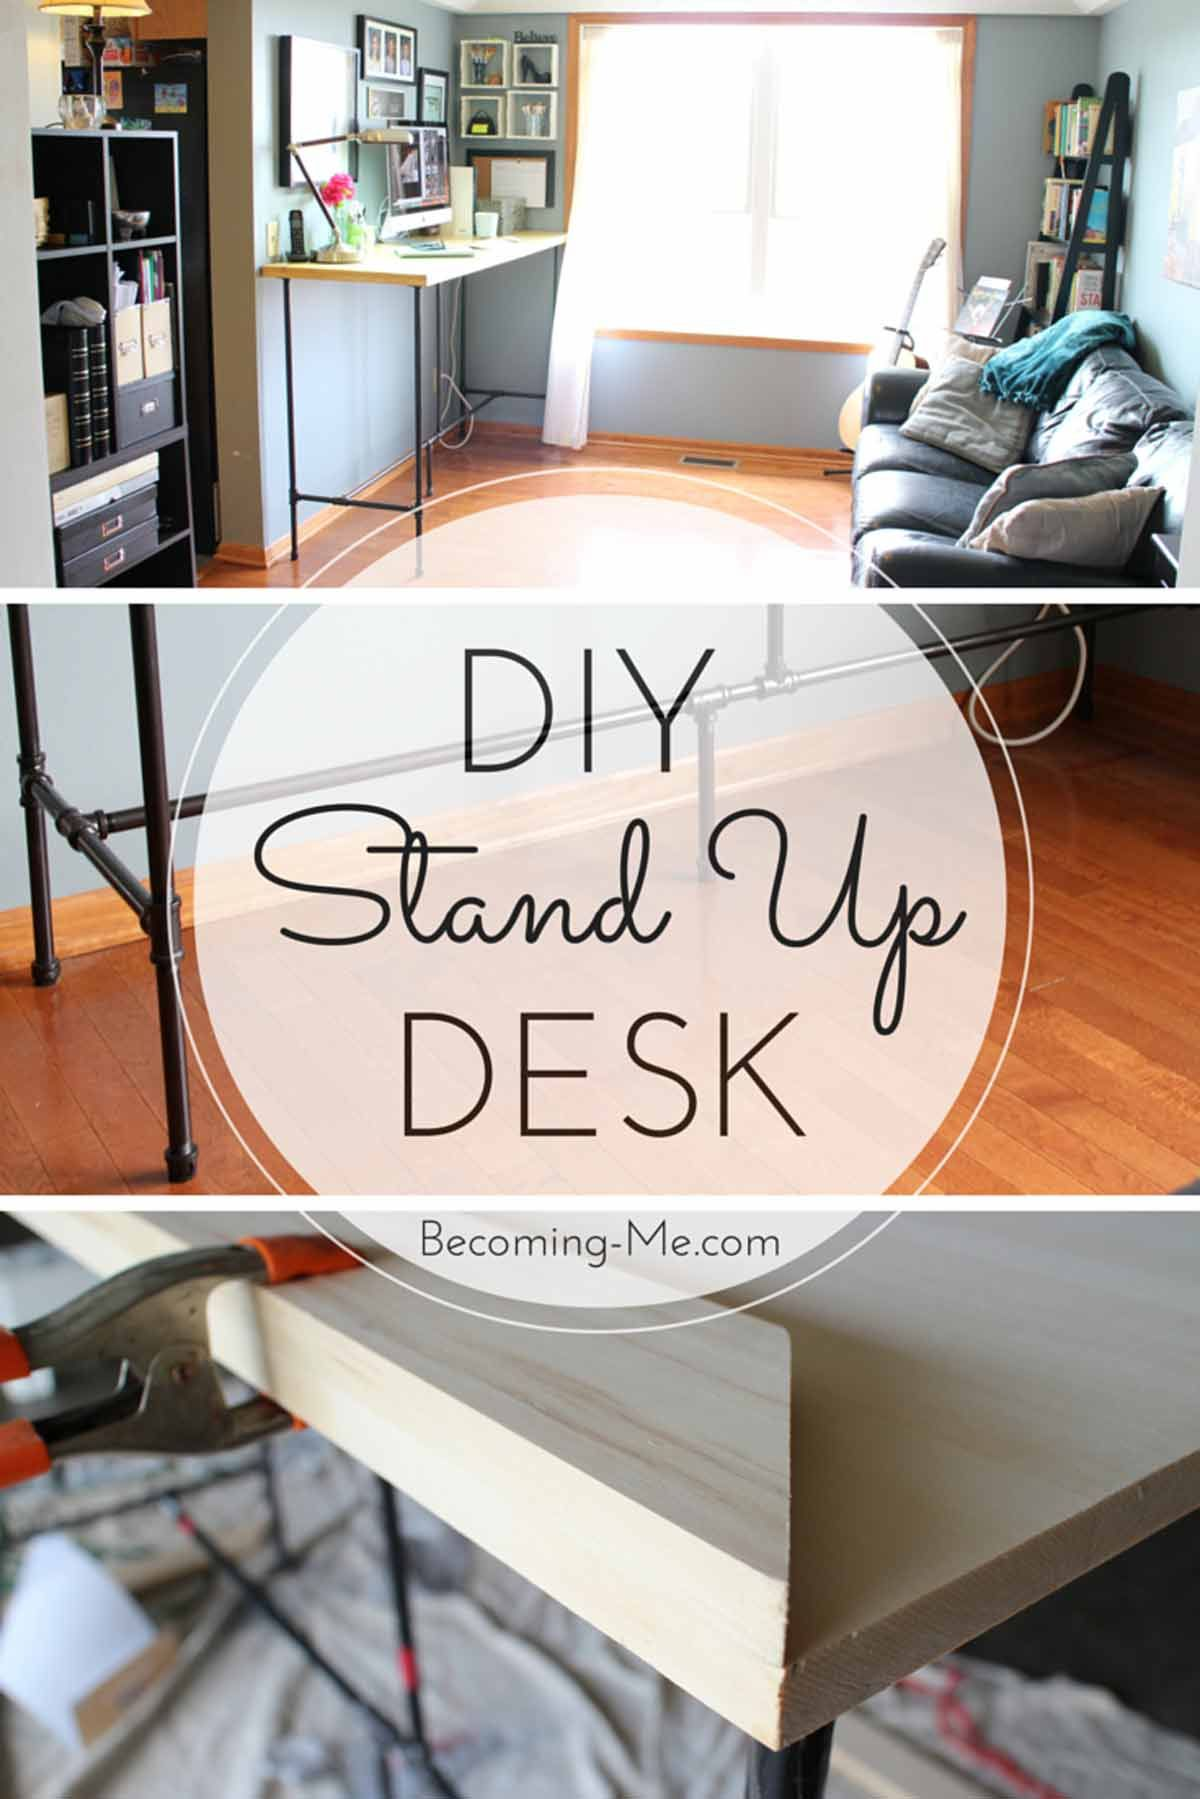 My Diy Standing Desk Project Becoming Me Http